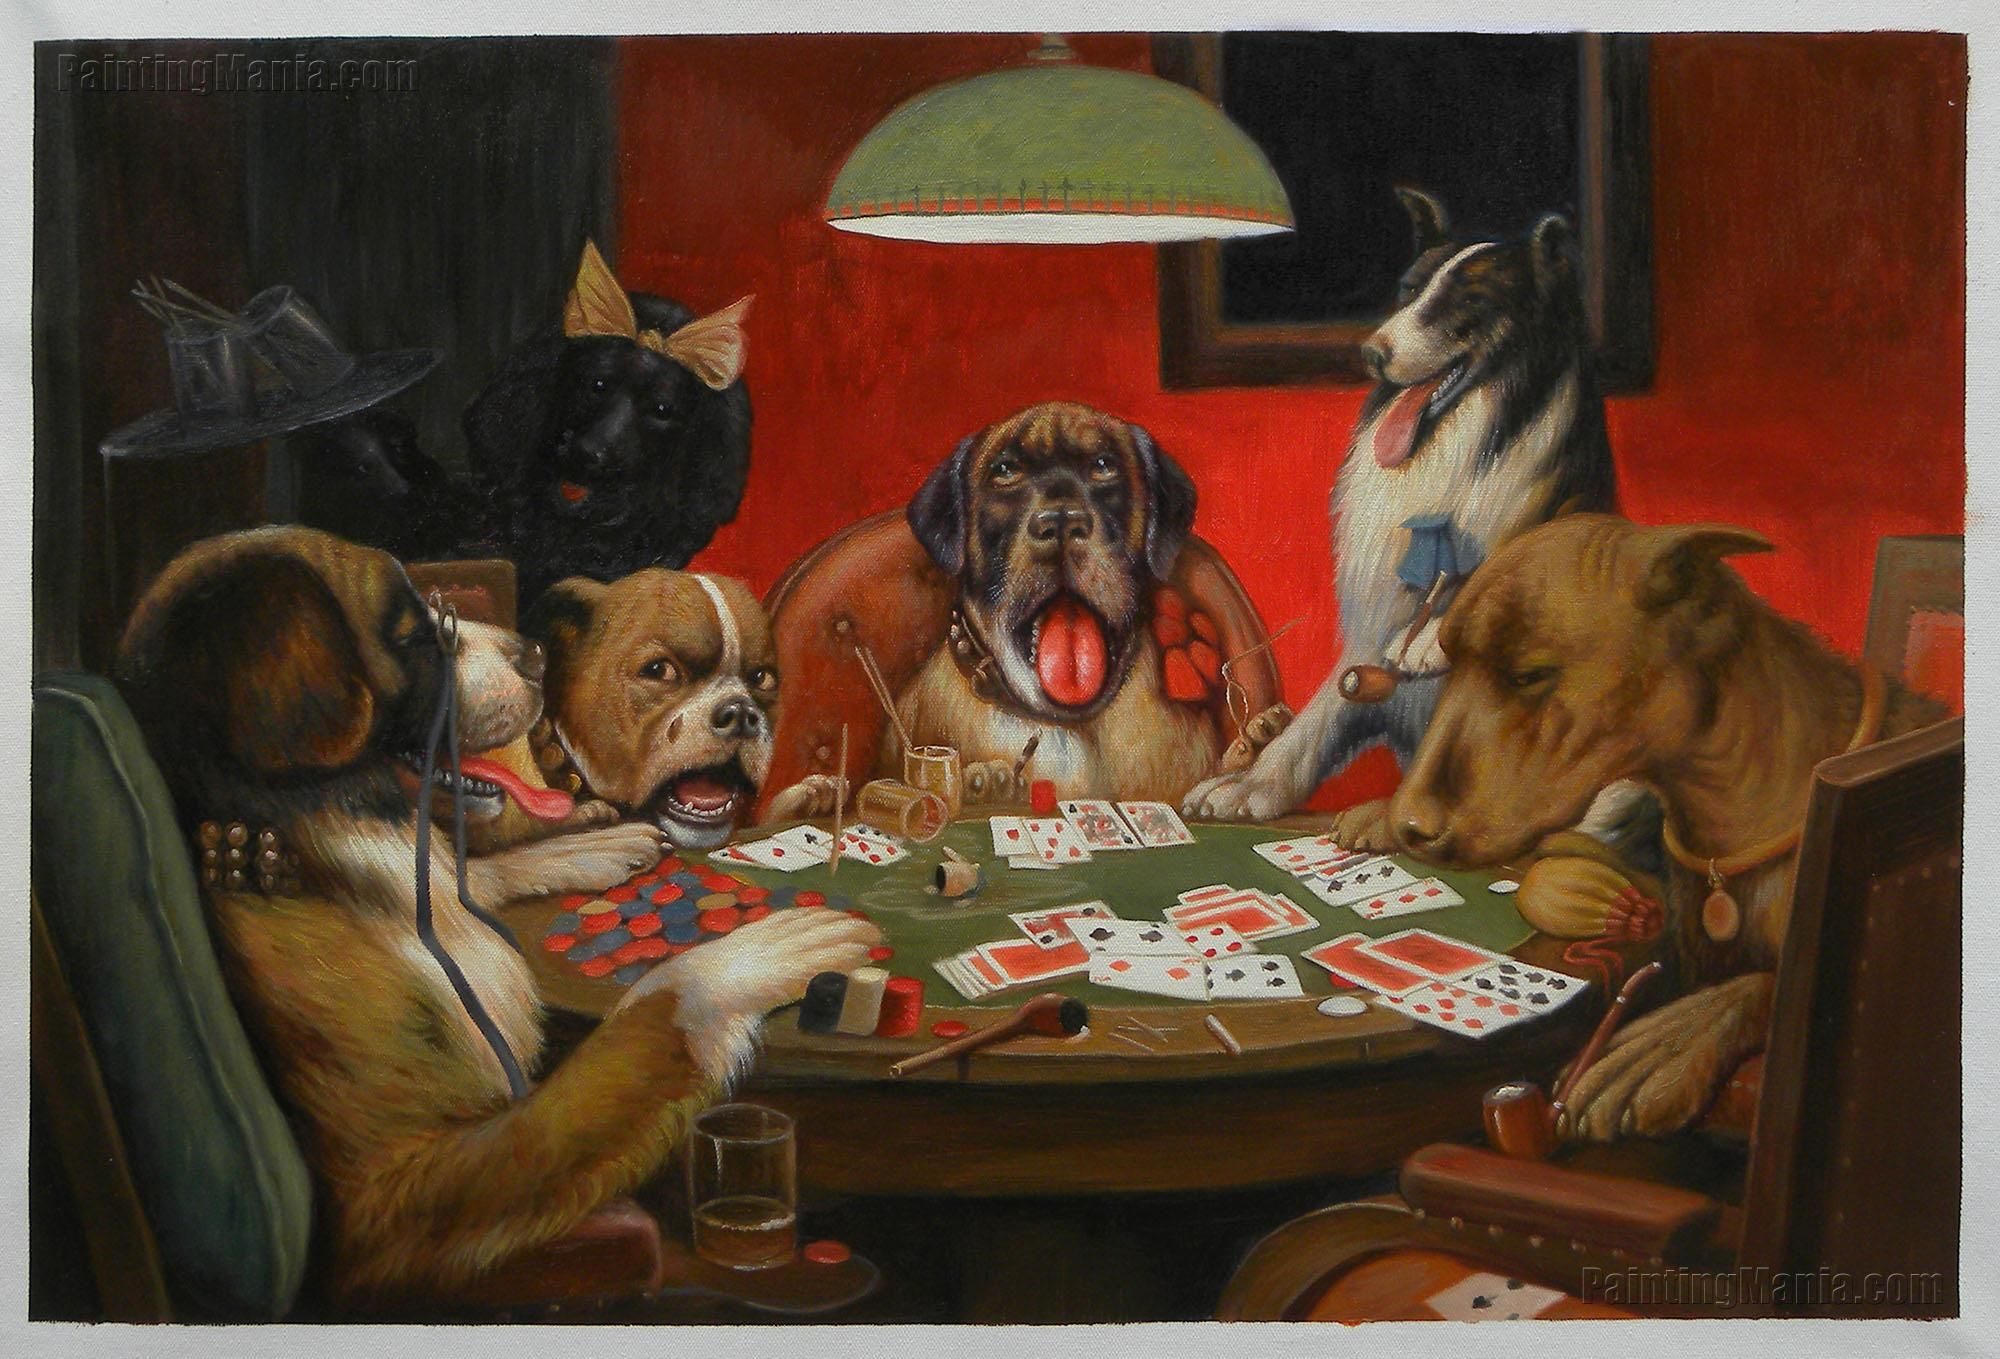 ìa friend in needî by cassius marcellus coolidge essay Cheap wall art canvas, buy quality art canvas directly from china wall art suppliers: a friend in need dogs playing poker by cassius marcellus coolidge hand painted oil painting reproduction replica wall art canvas enjoy free shipping worldwide limited time sale easy return.